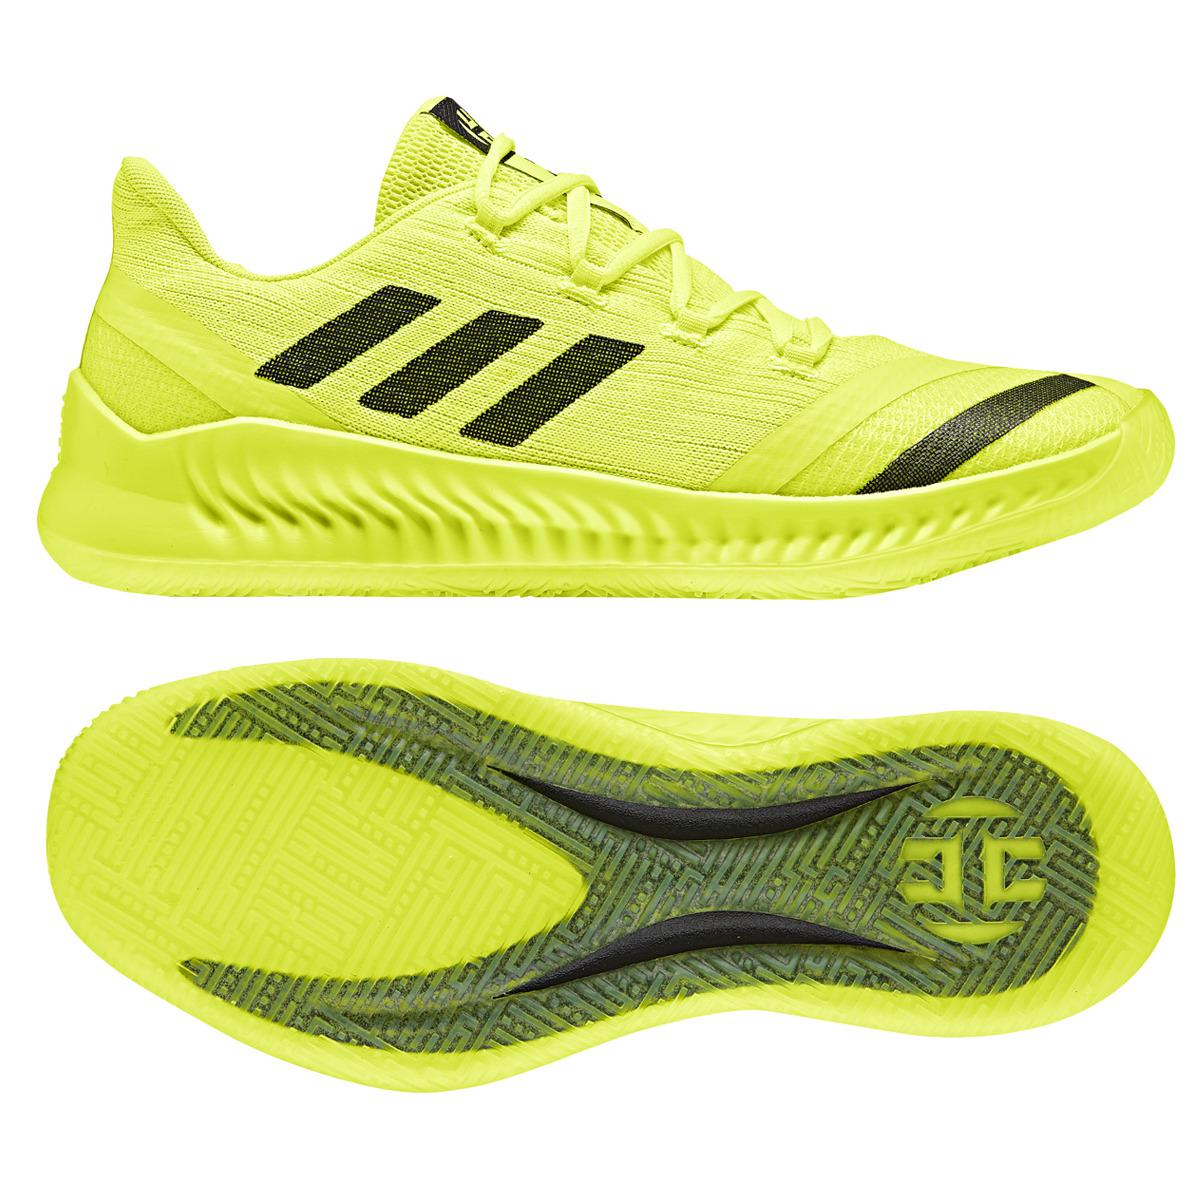 05980b052a83fd Lyst - adidas Harden B e 2 Basketball Shoes in Yellow for Men